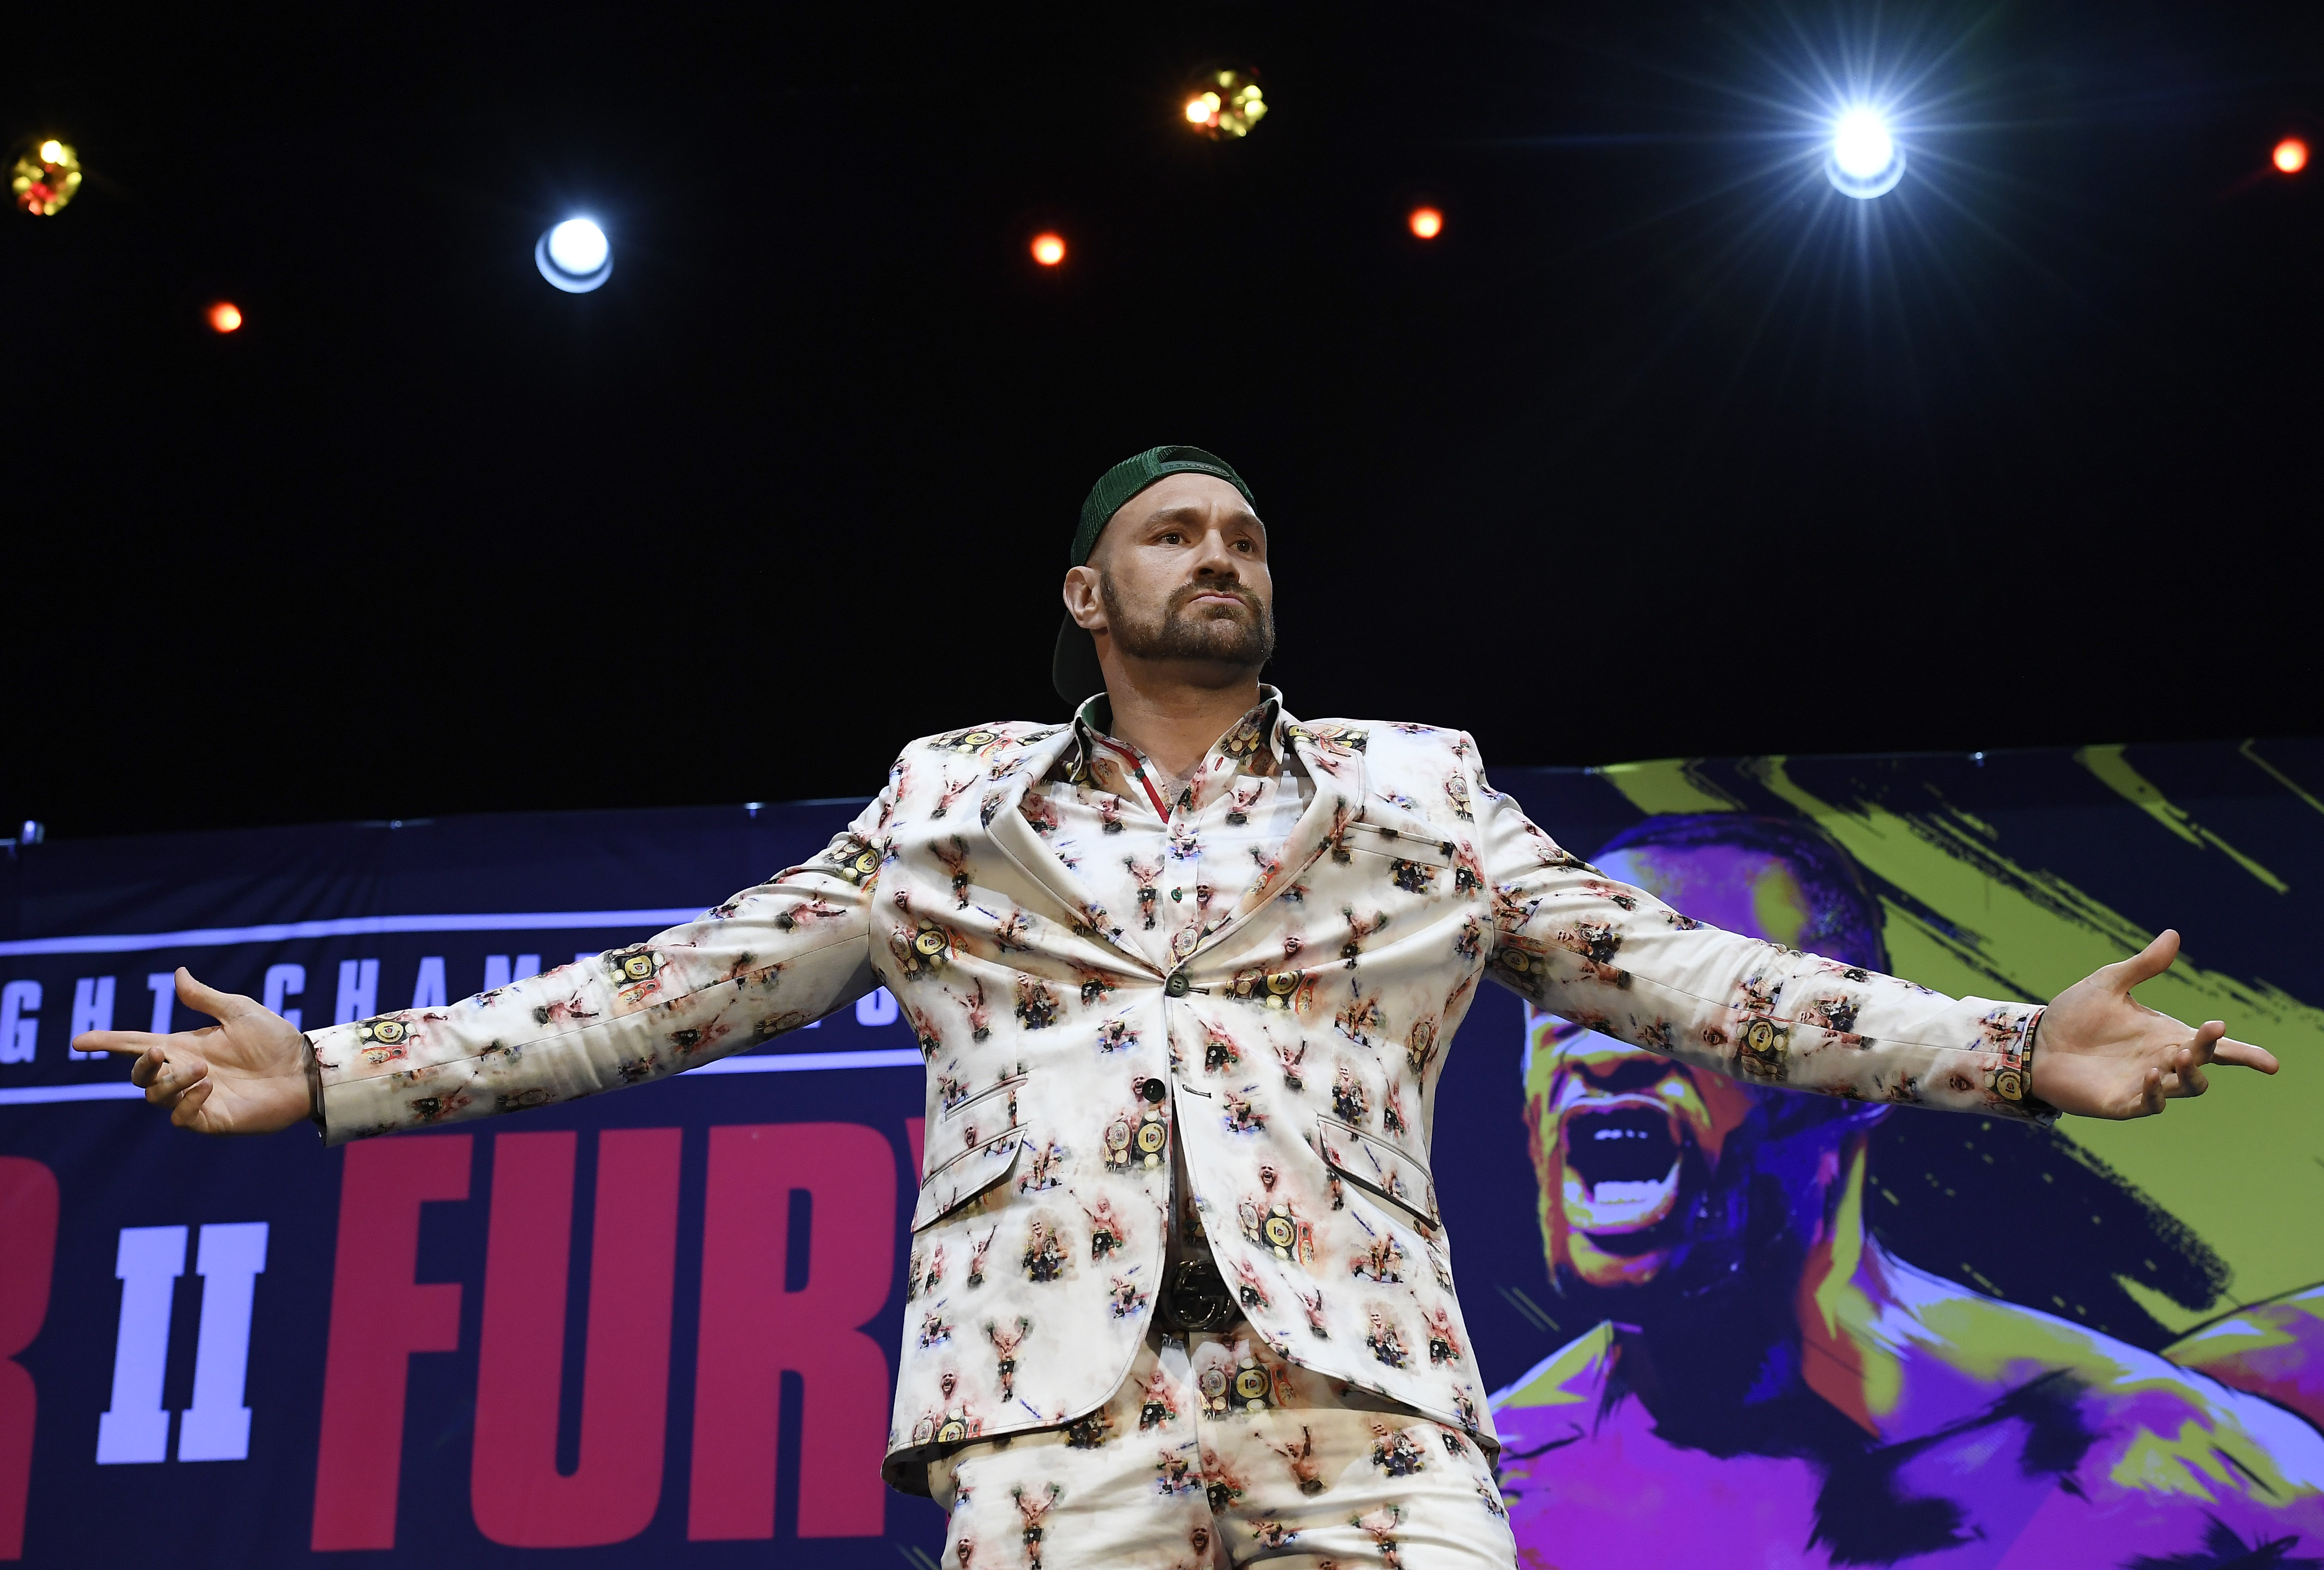 Tyson Fury claims Deontay Wilder is 'running scared' ahead of rematch